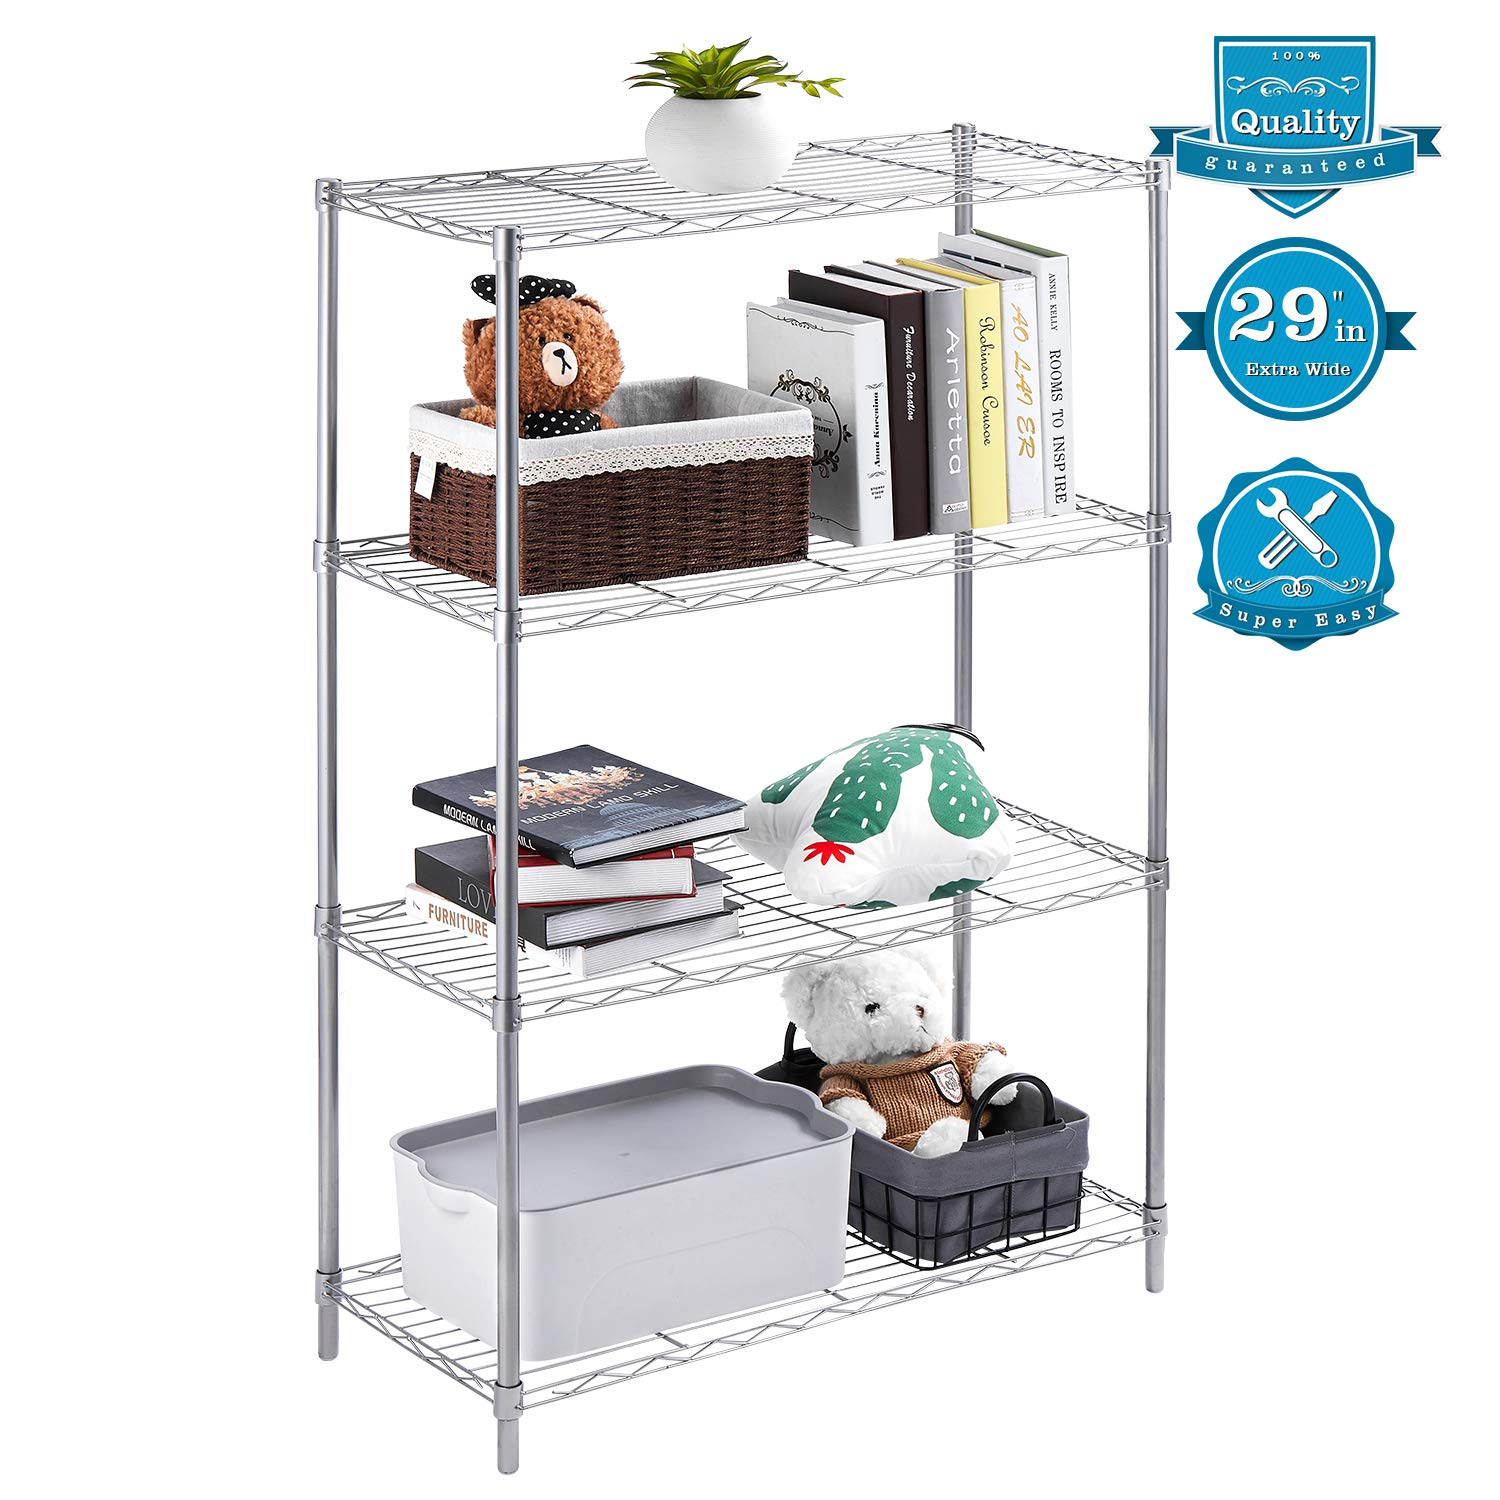 AOOU Shelving Unit 4-Tier 29'' Extra Wide Wire Shelving for Large Storage, Classic Metal Steel Storage Rack Sturdy for use in Pantry, Living Room, Kitchen, Garage, Coated with Silver by AOOU